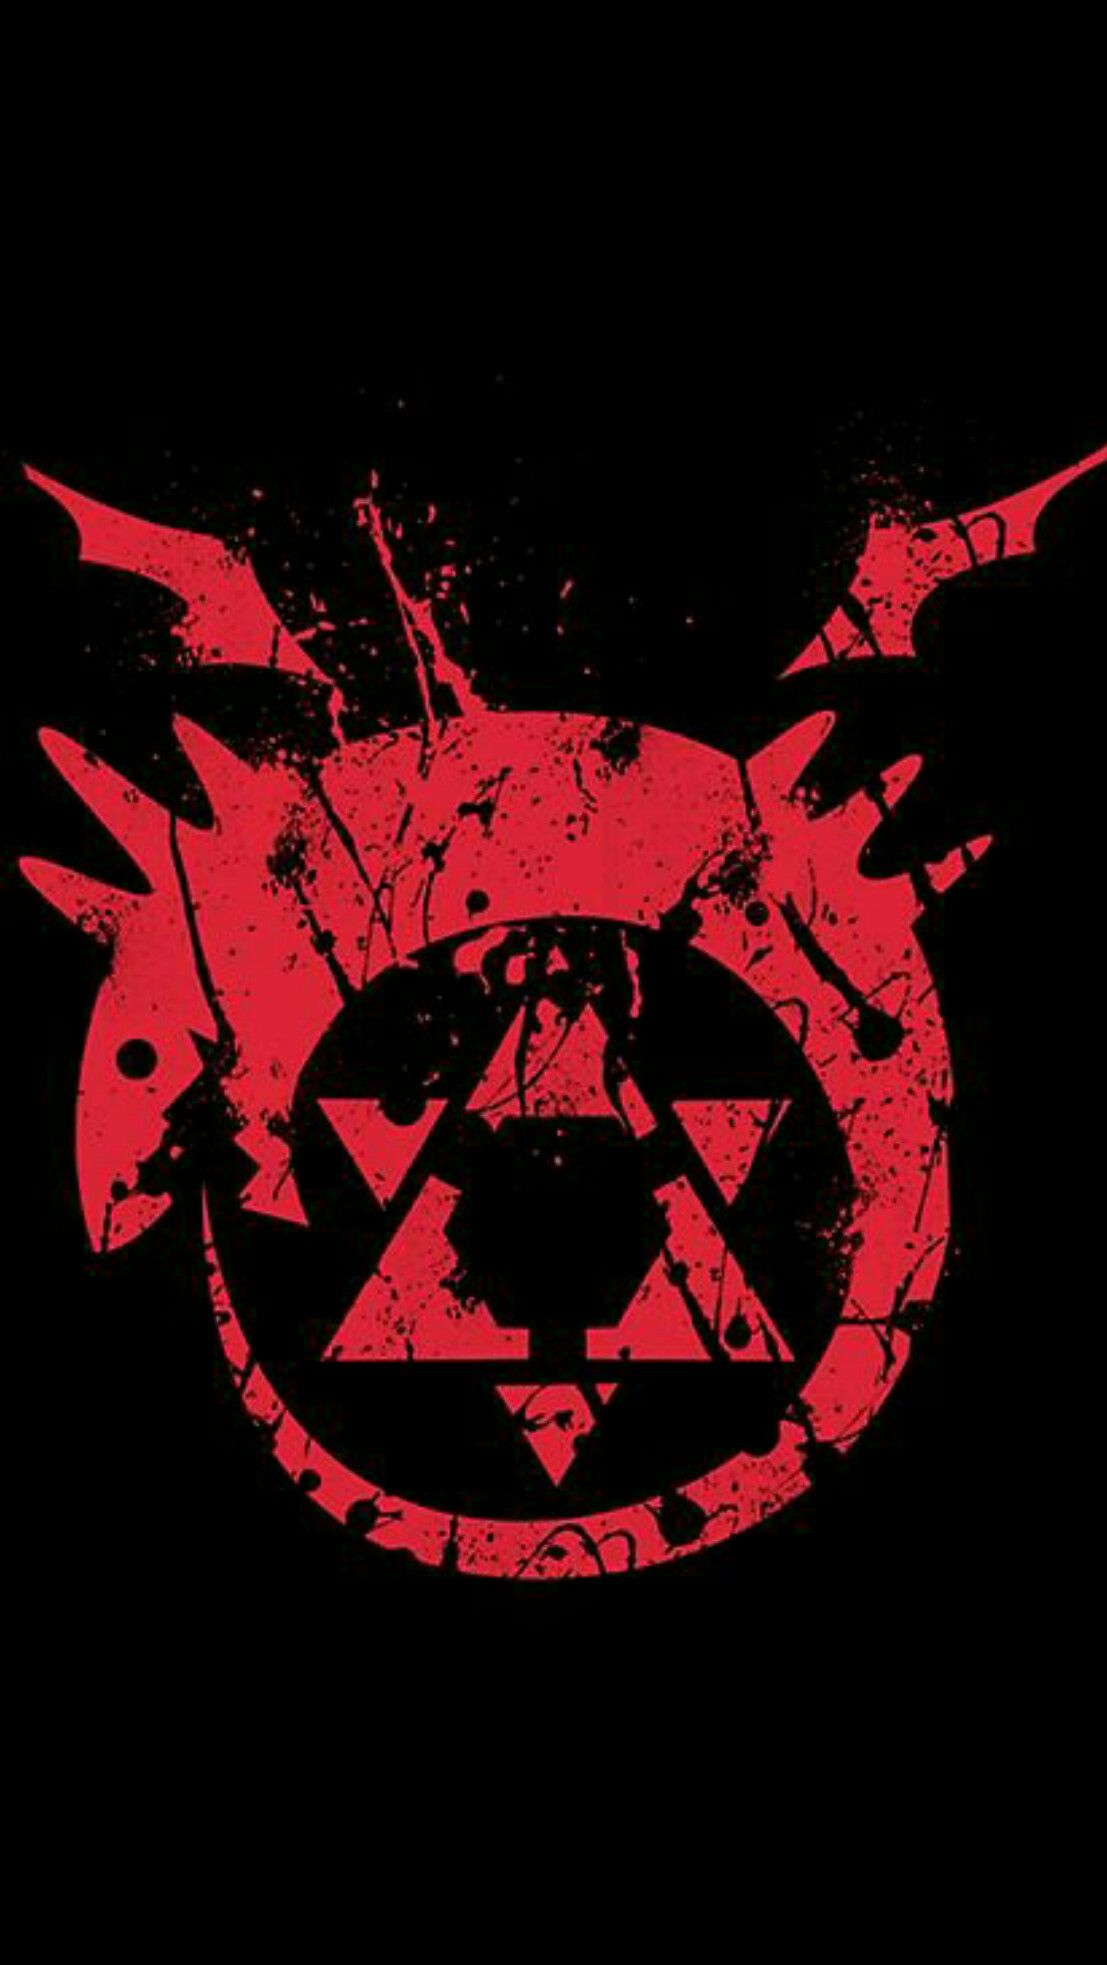 anime fma black wallpaper android iphone Fullmetal